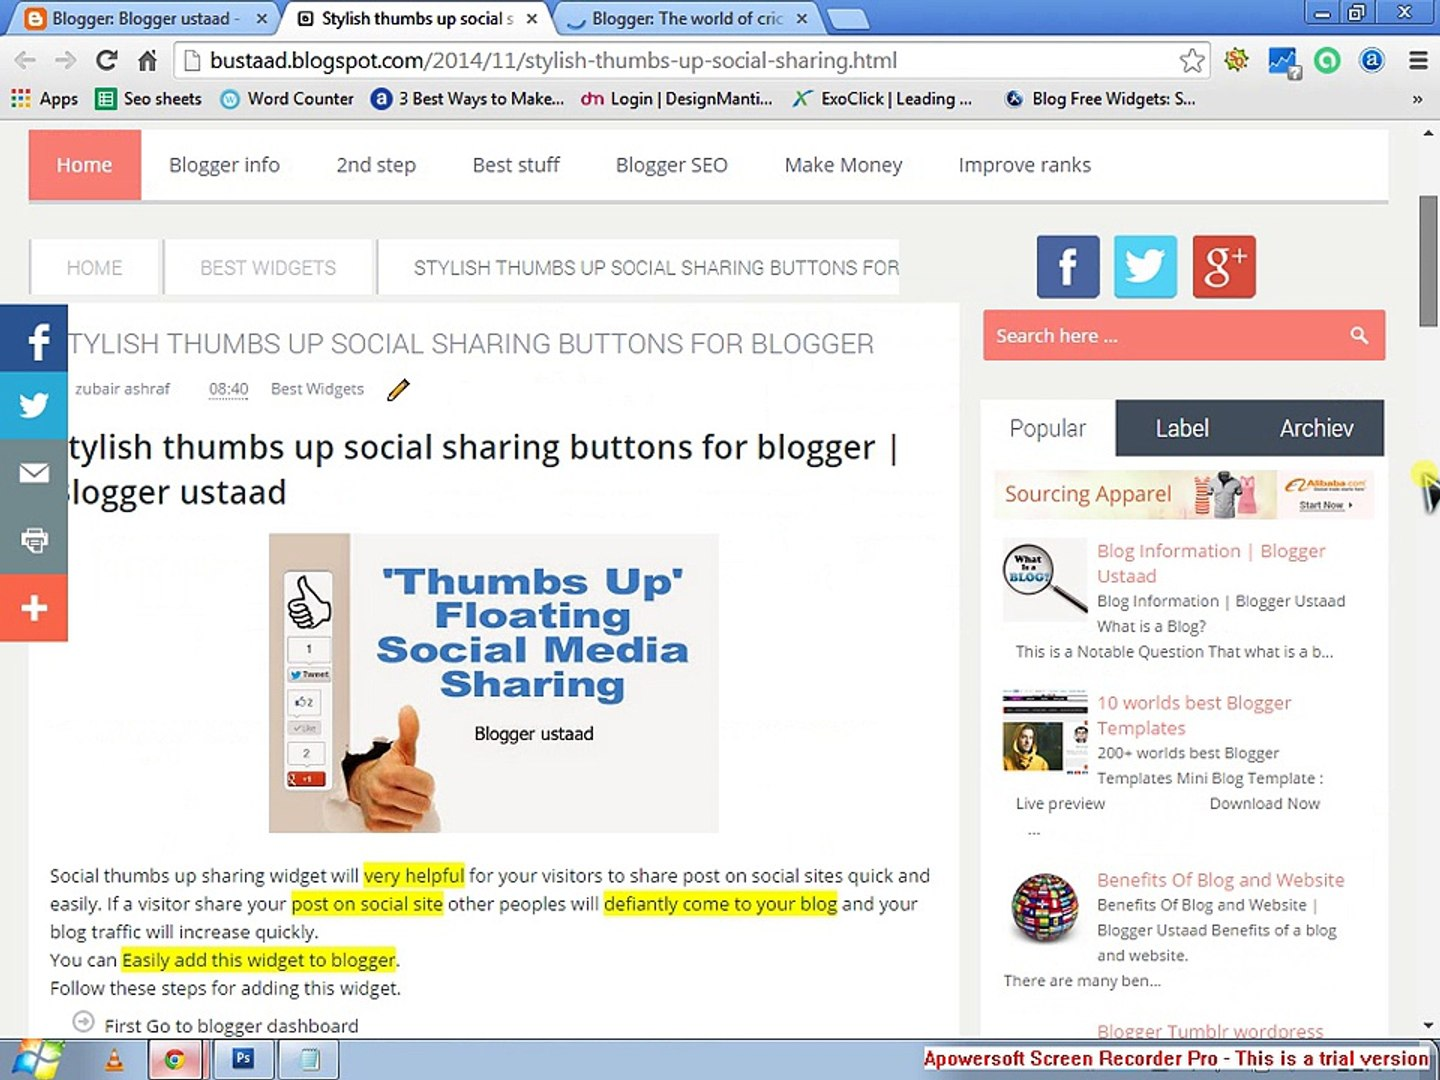 How to add social thumbs up sharing buttons in blogger